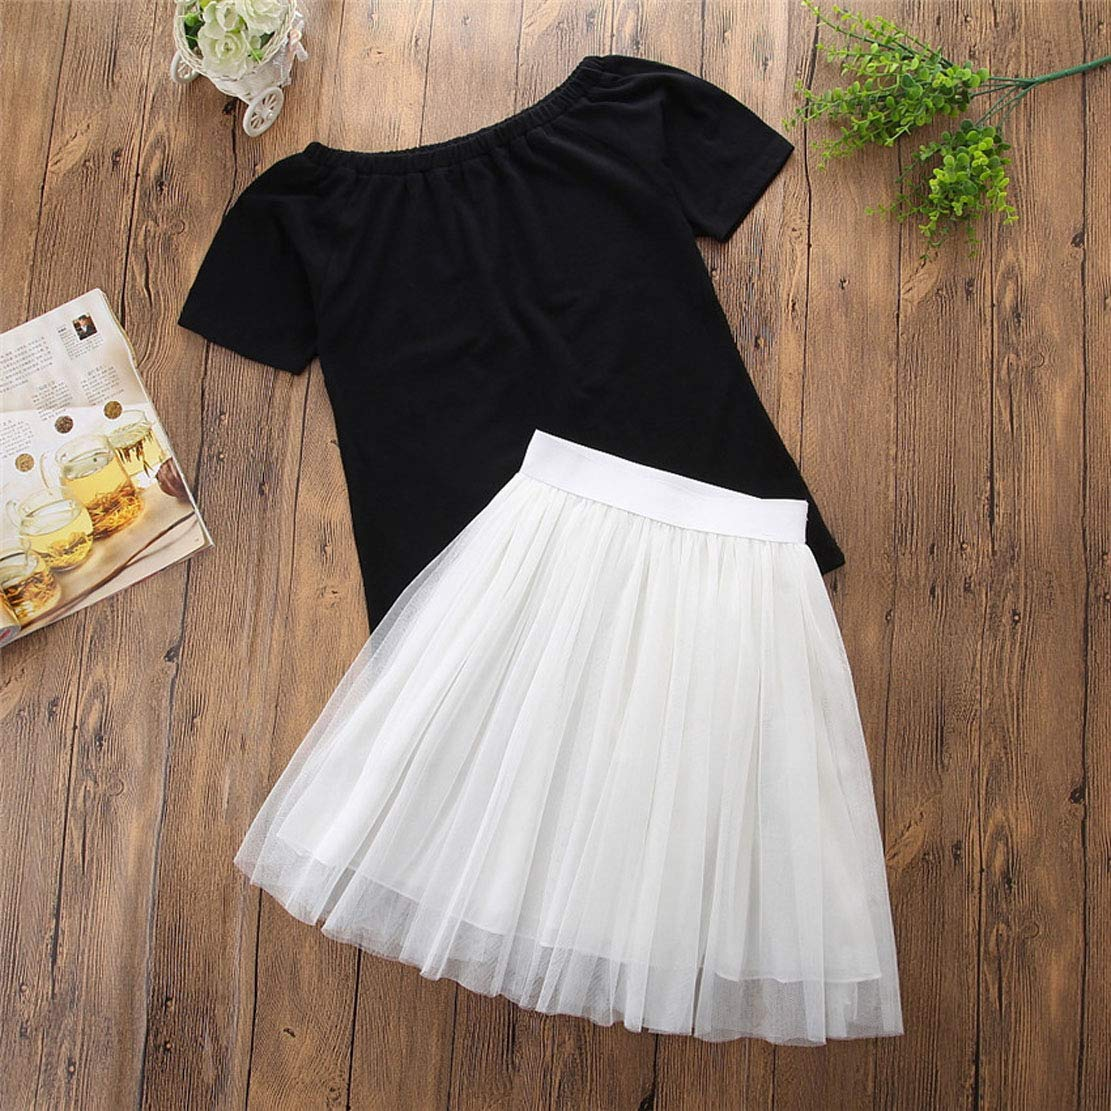 Family Matching Outfits Mommy and Me Black Short Tops /& White Lace Skirts Clothing Set